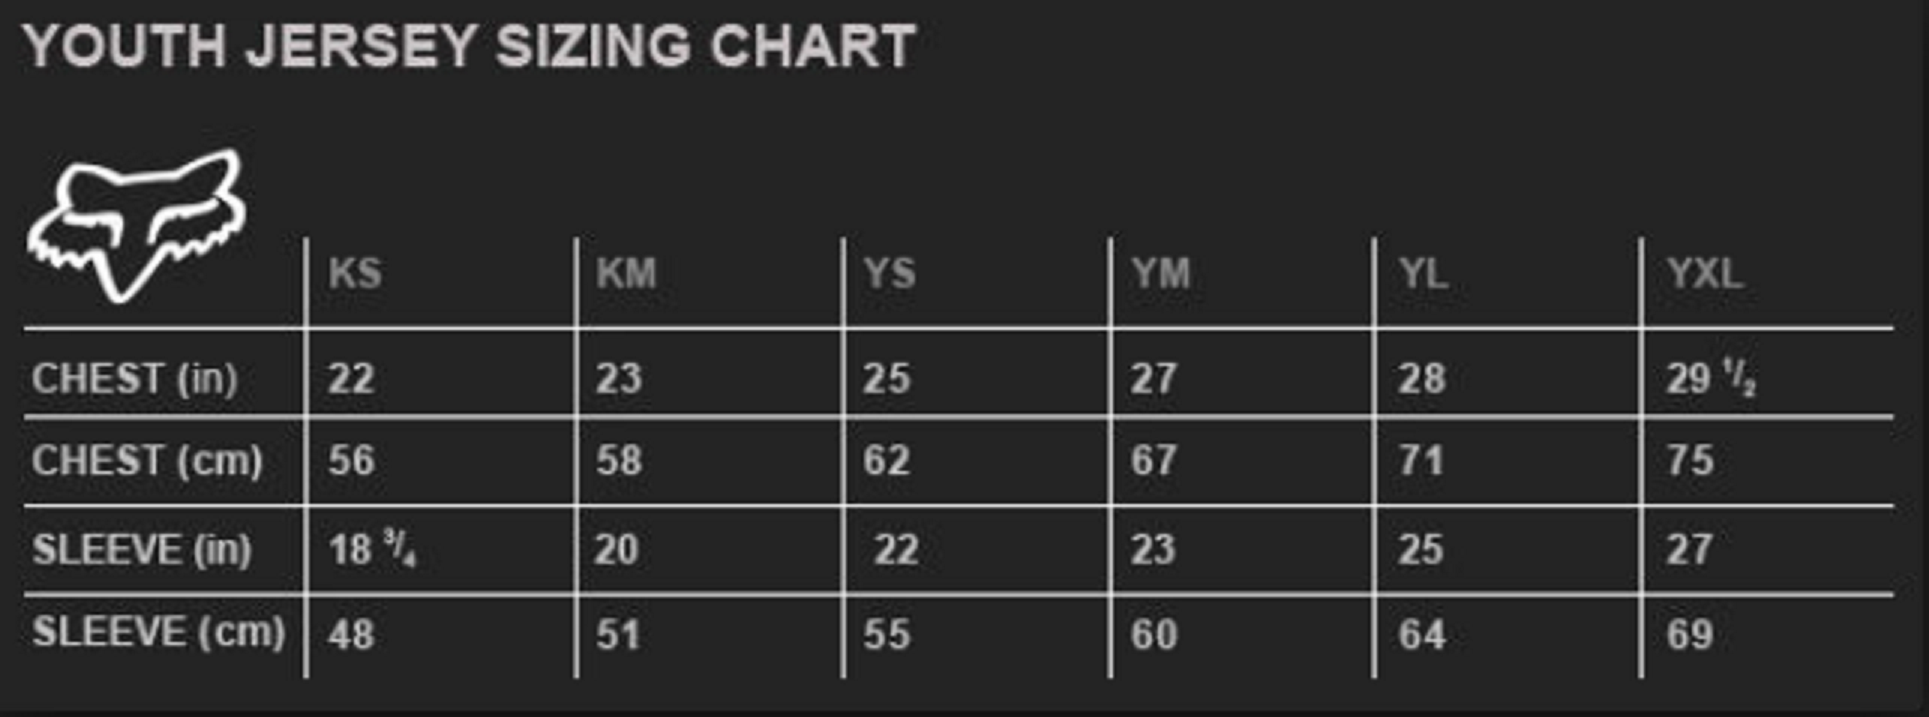 Fox Jersey Youth Sizing Chart - Ortsplanungsrevision Stadt Thun